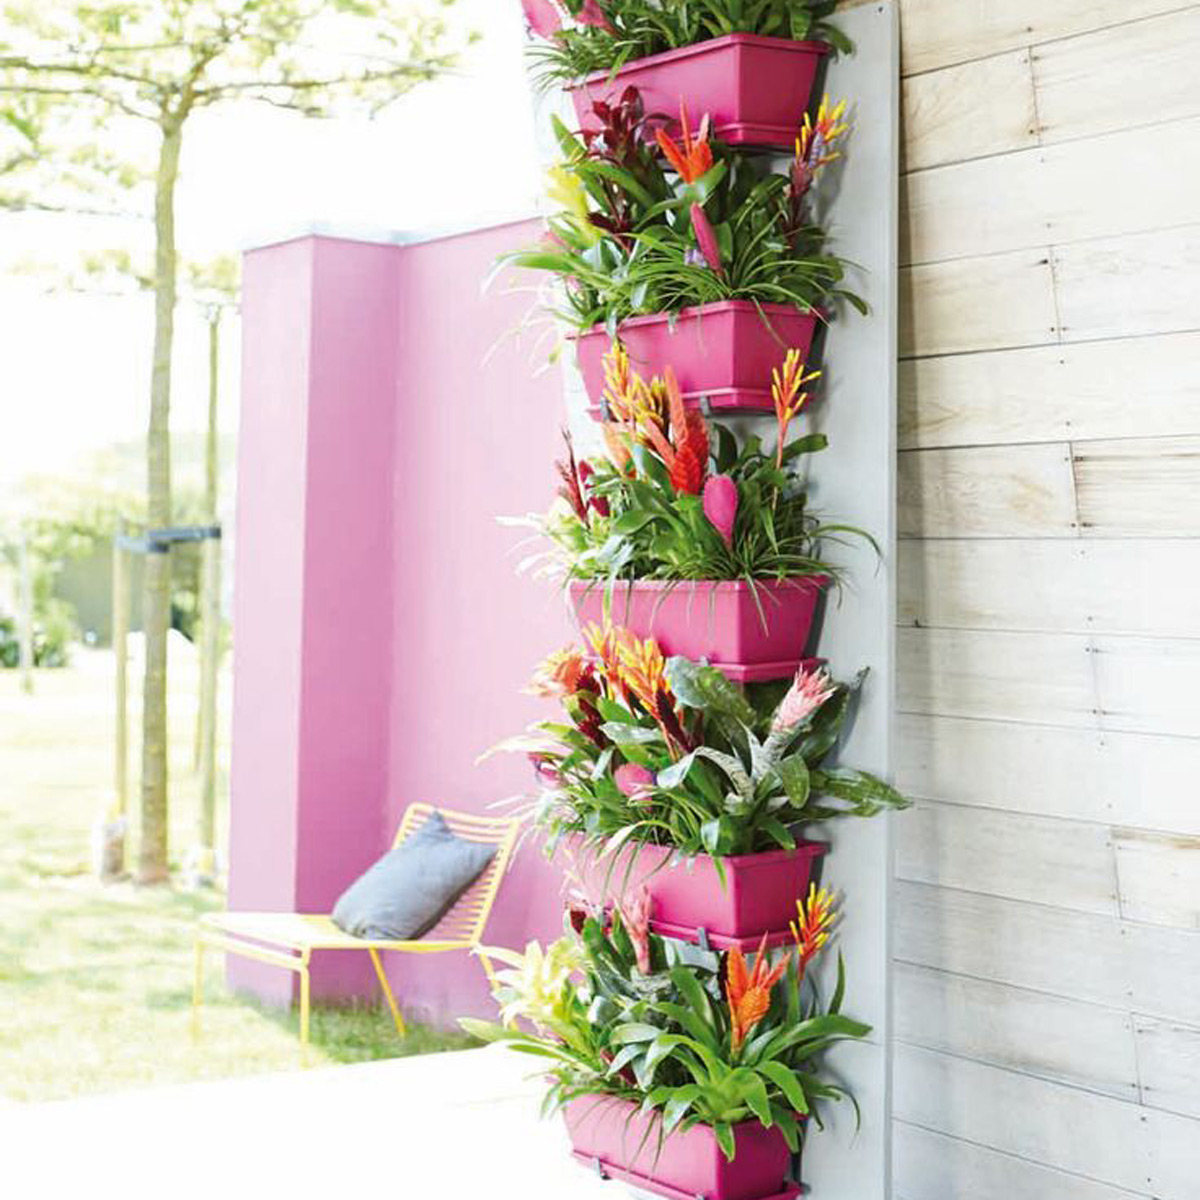 8 Inspiring Small Garden Ideas Garden Tips Good